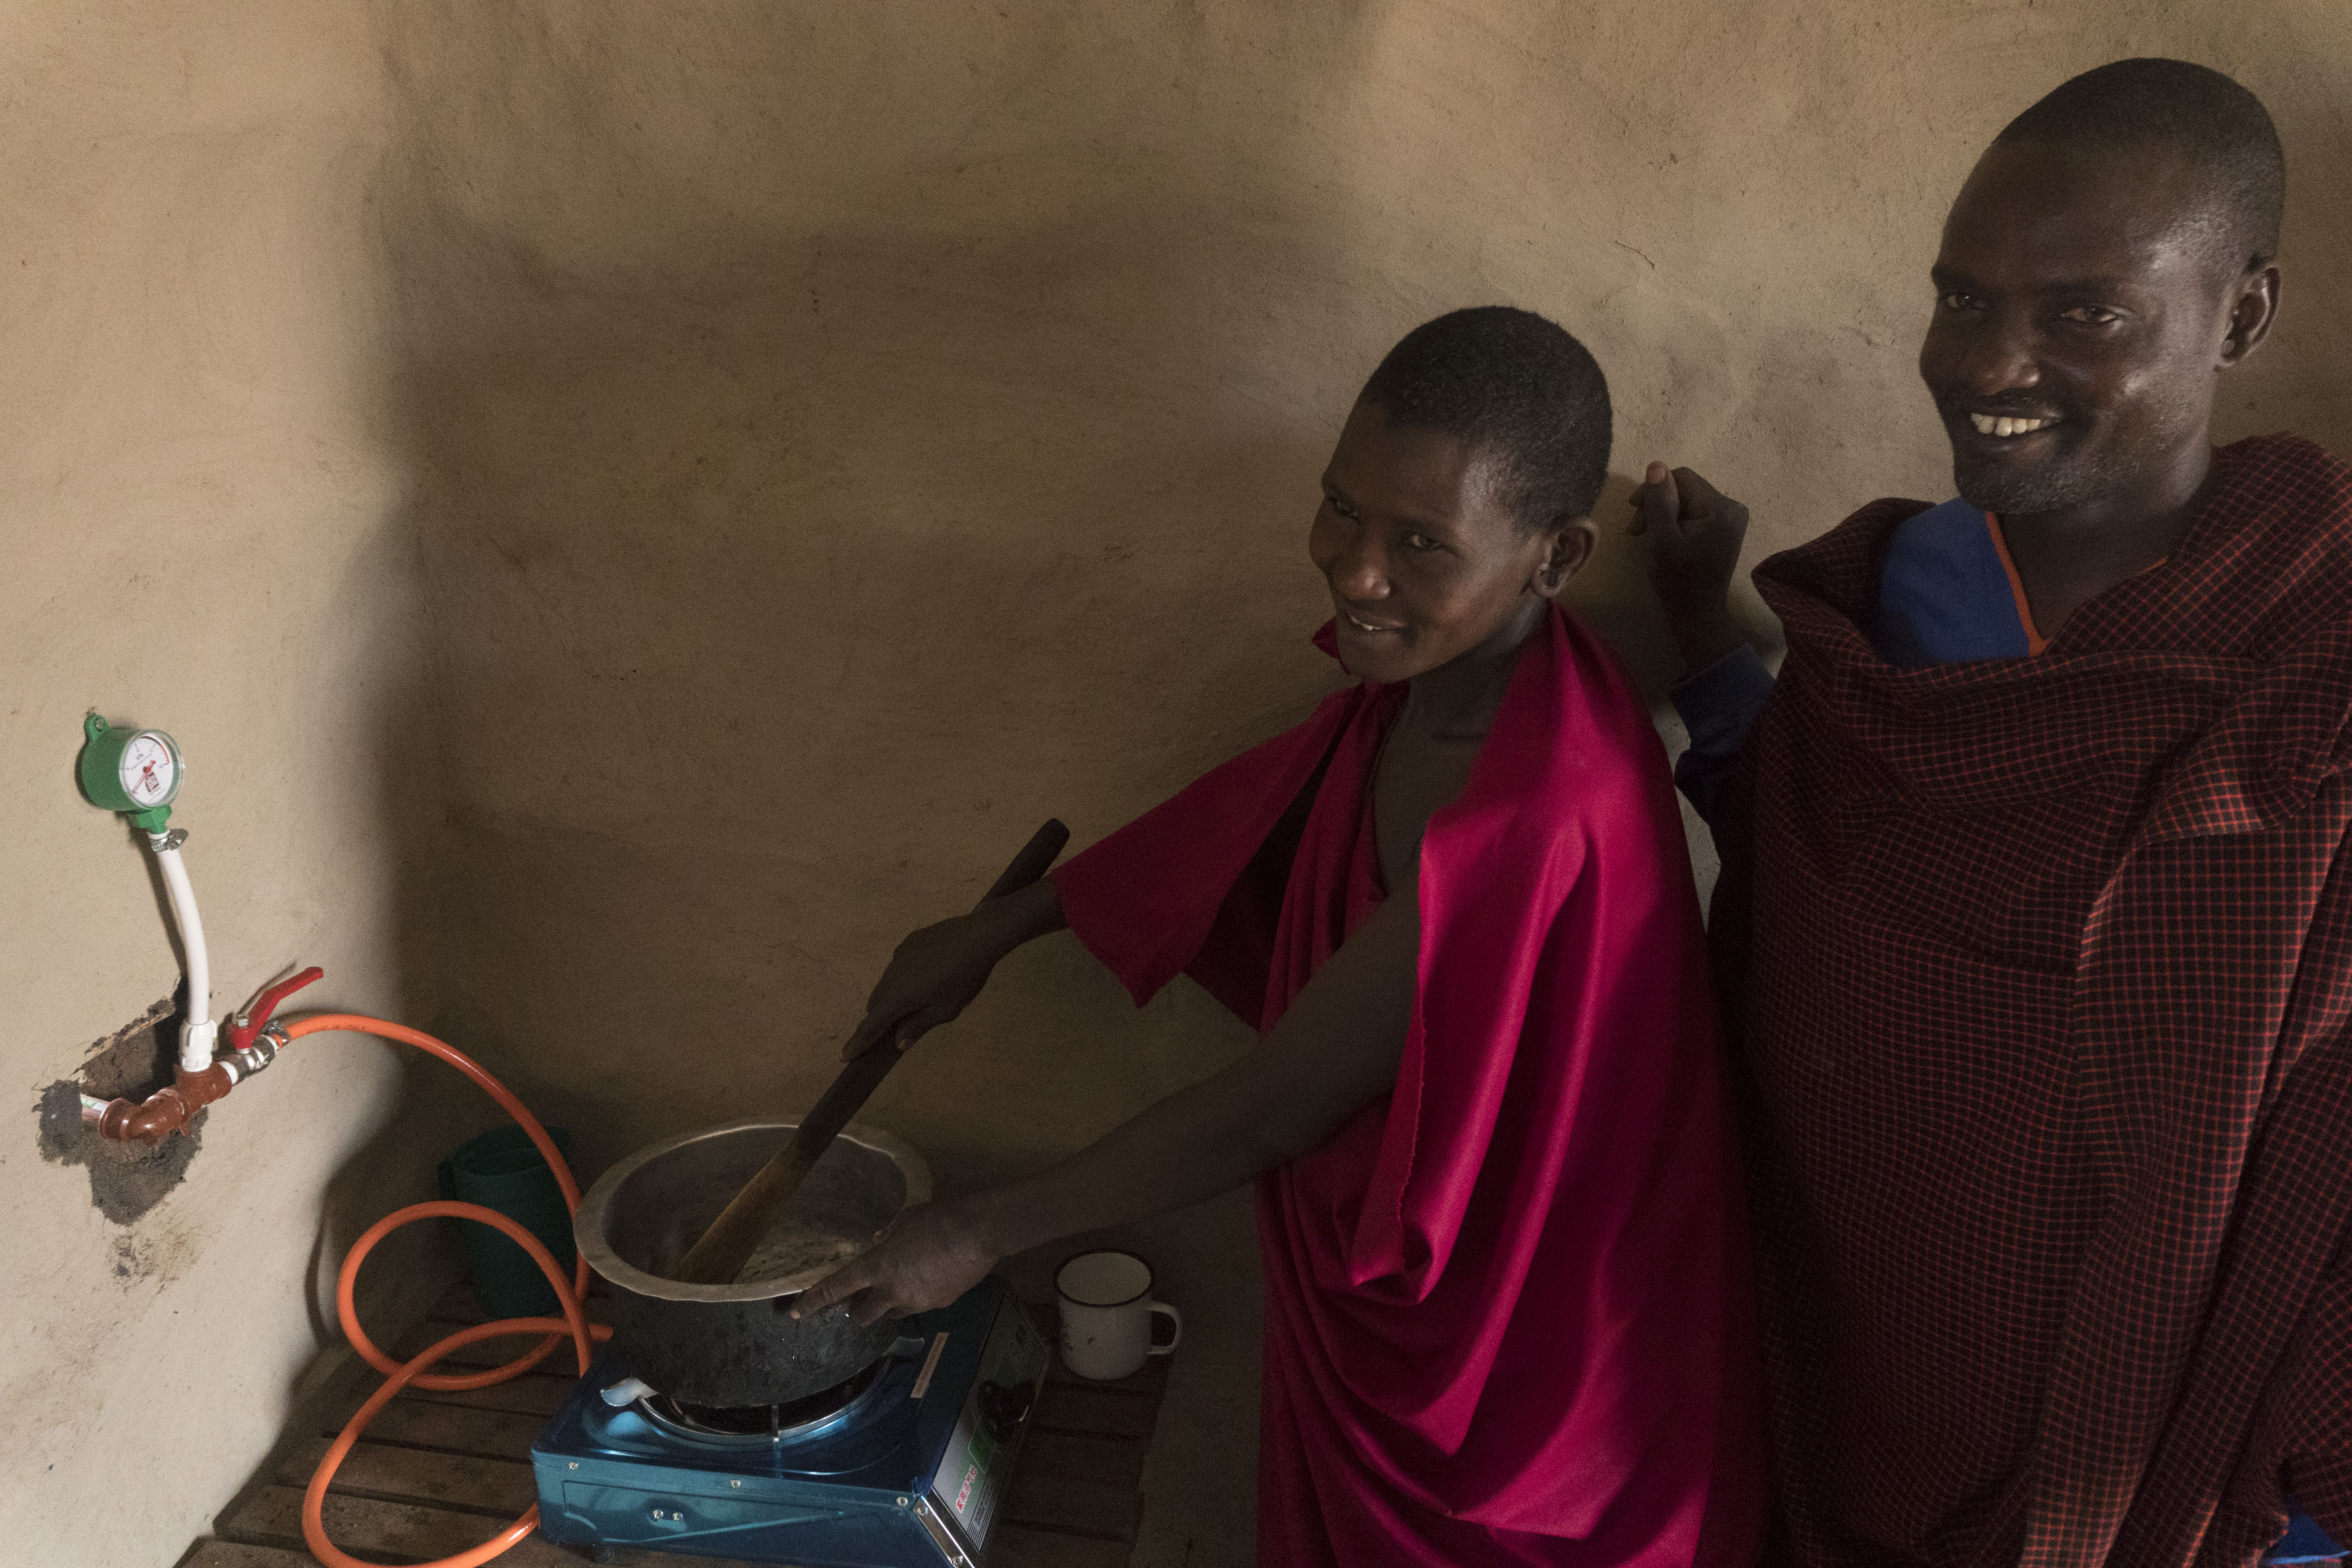 Two Naitolia village men try using the biogas stove built as a joint project between the village and the Tanzania Partnership Program group. They are inside with the small stove in the corner of the room.